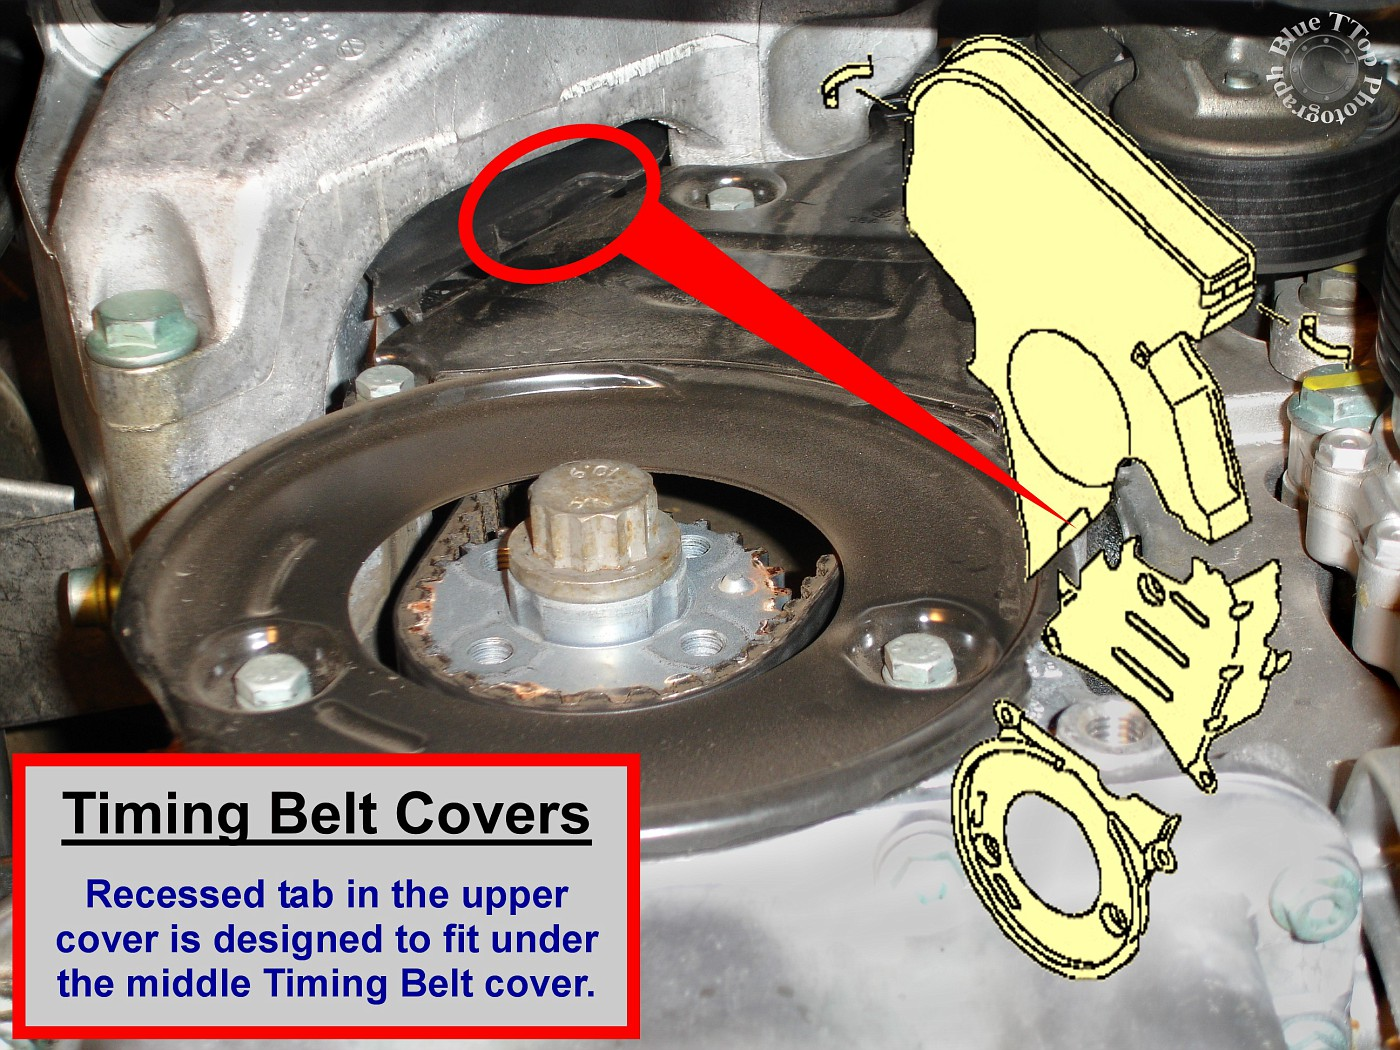 This can be properly positioned and confirmed from underneath. Then secure  the 2 clips that hold the Upper Timing Belt Cover to the Valve Cover.